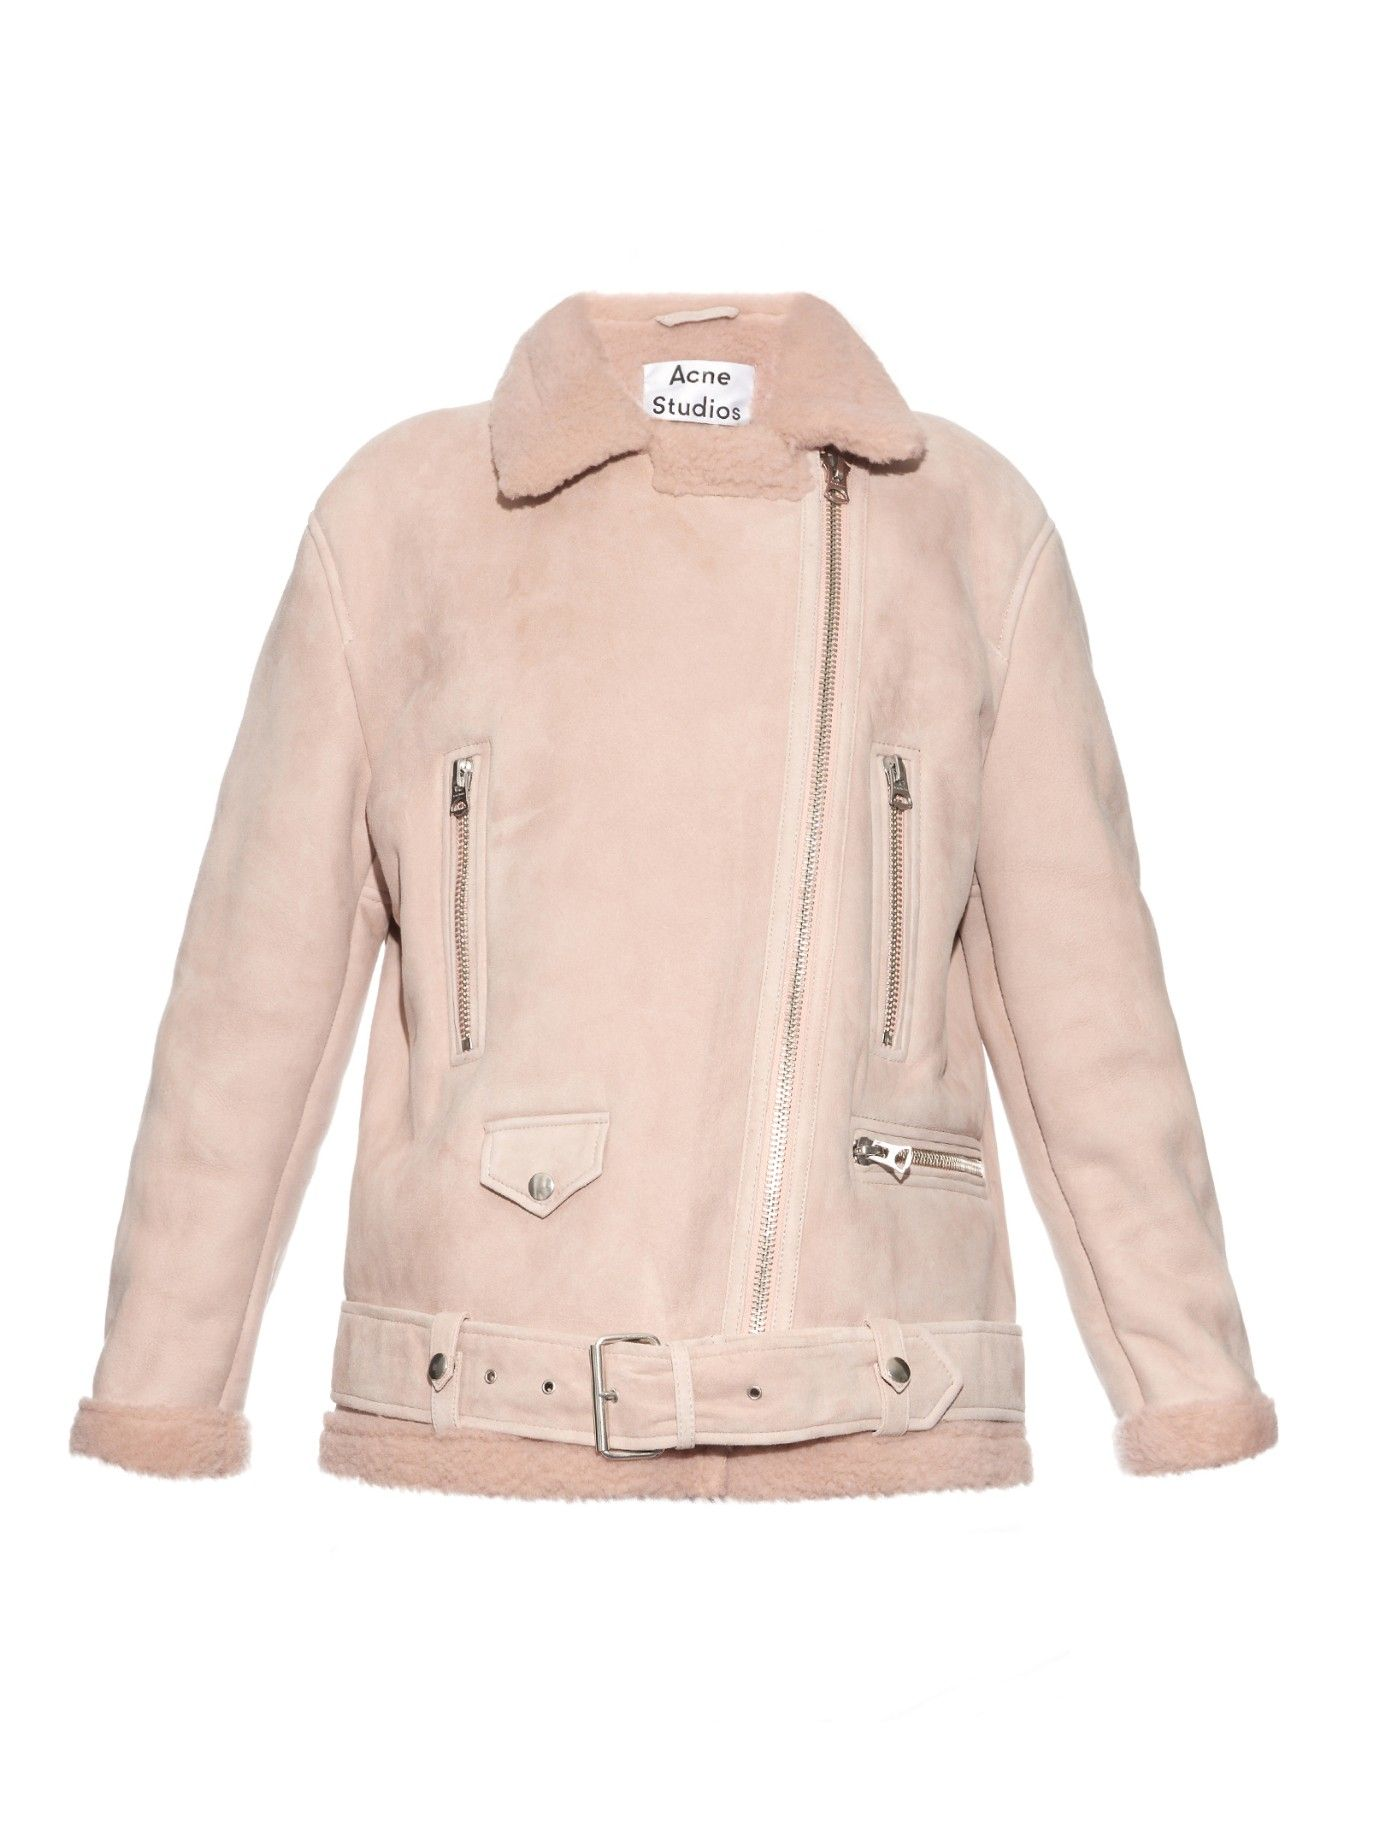 acne-studios-light-pink-more-shearling-long-aviator-jacket-pink ...